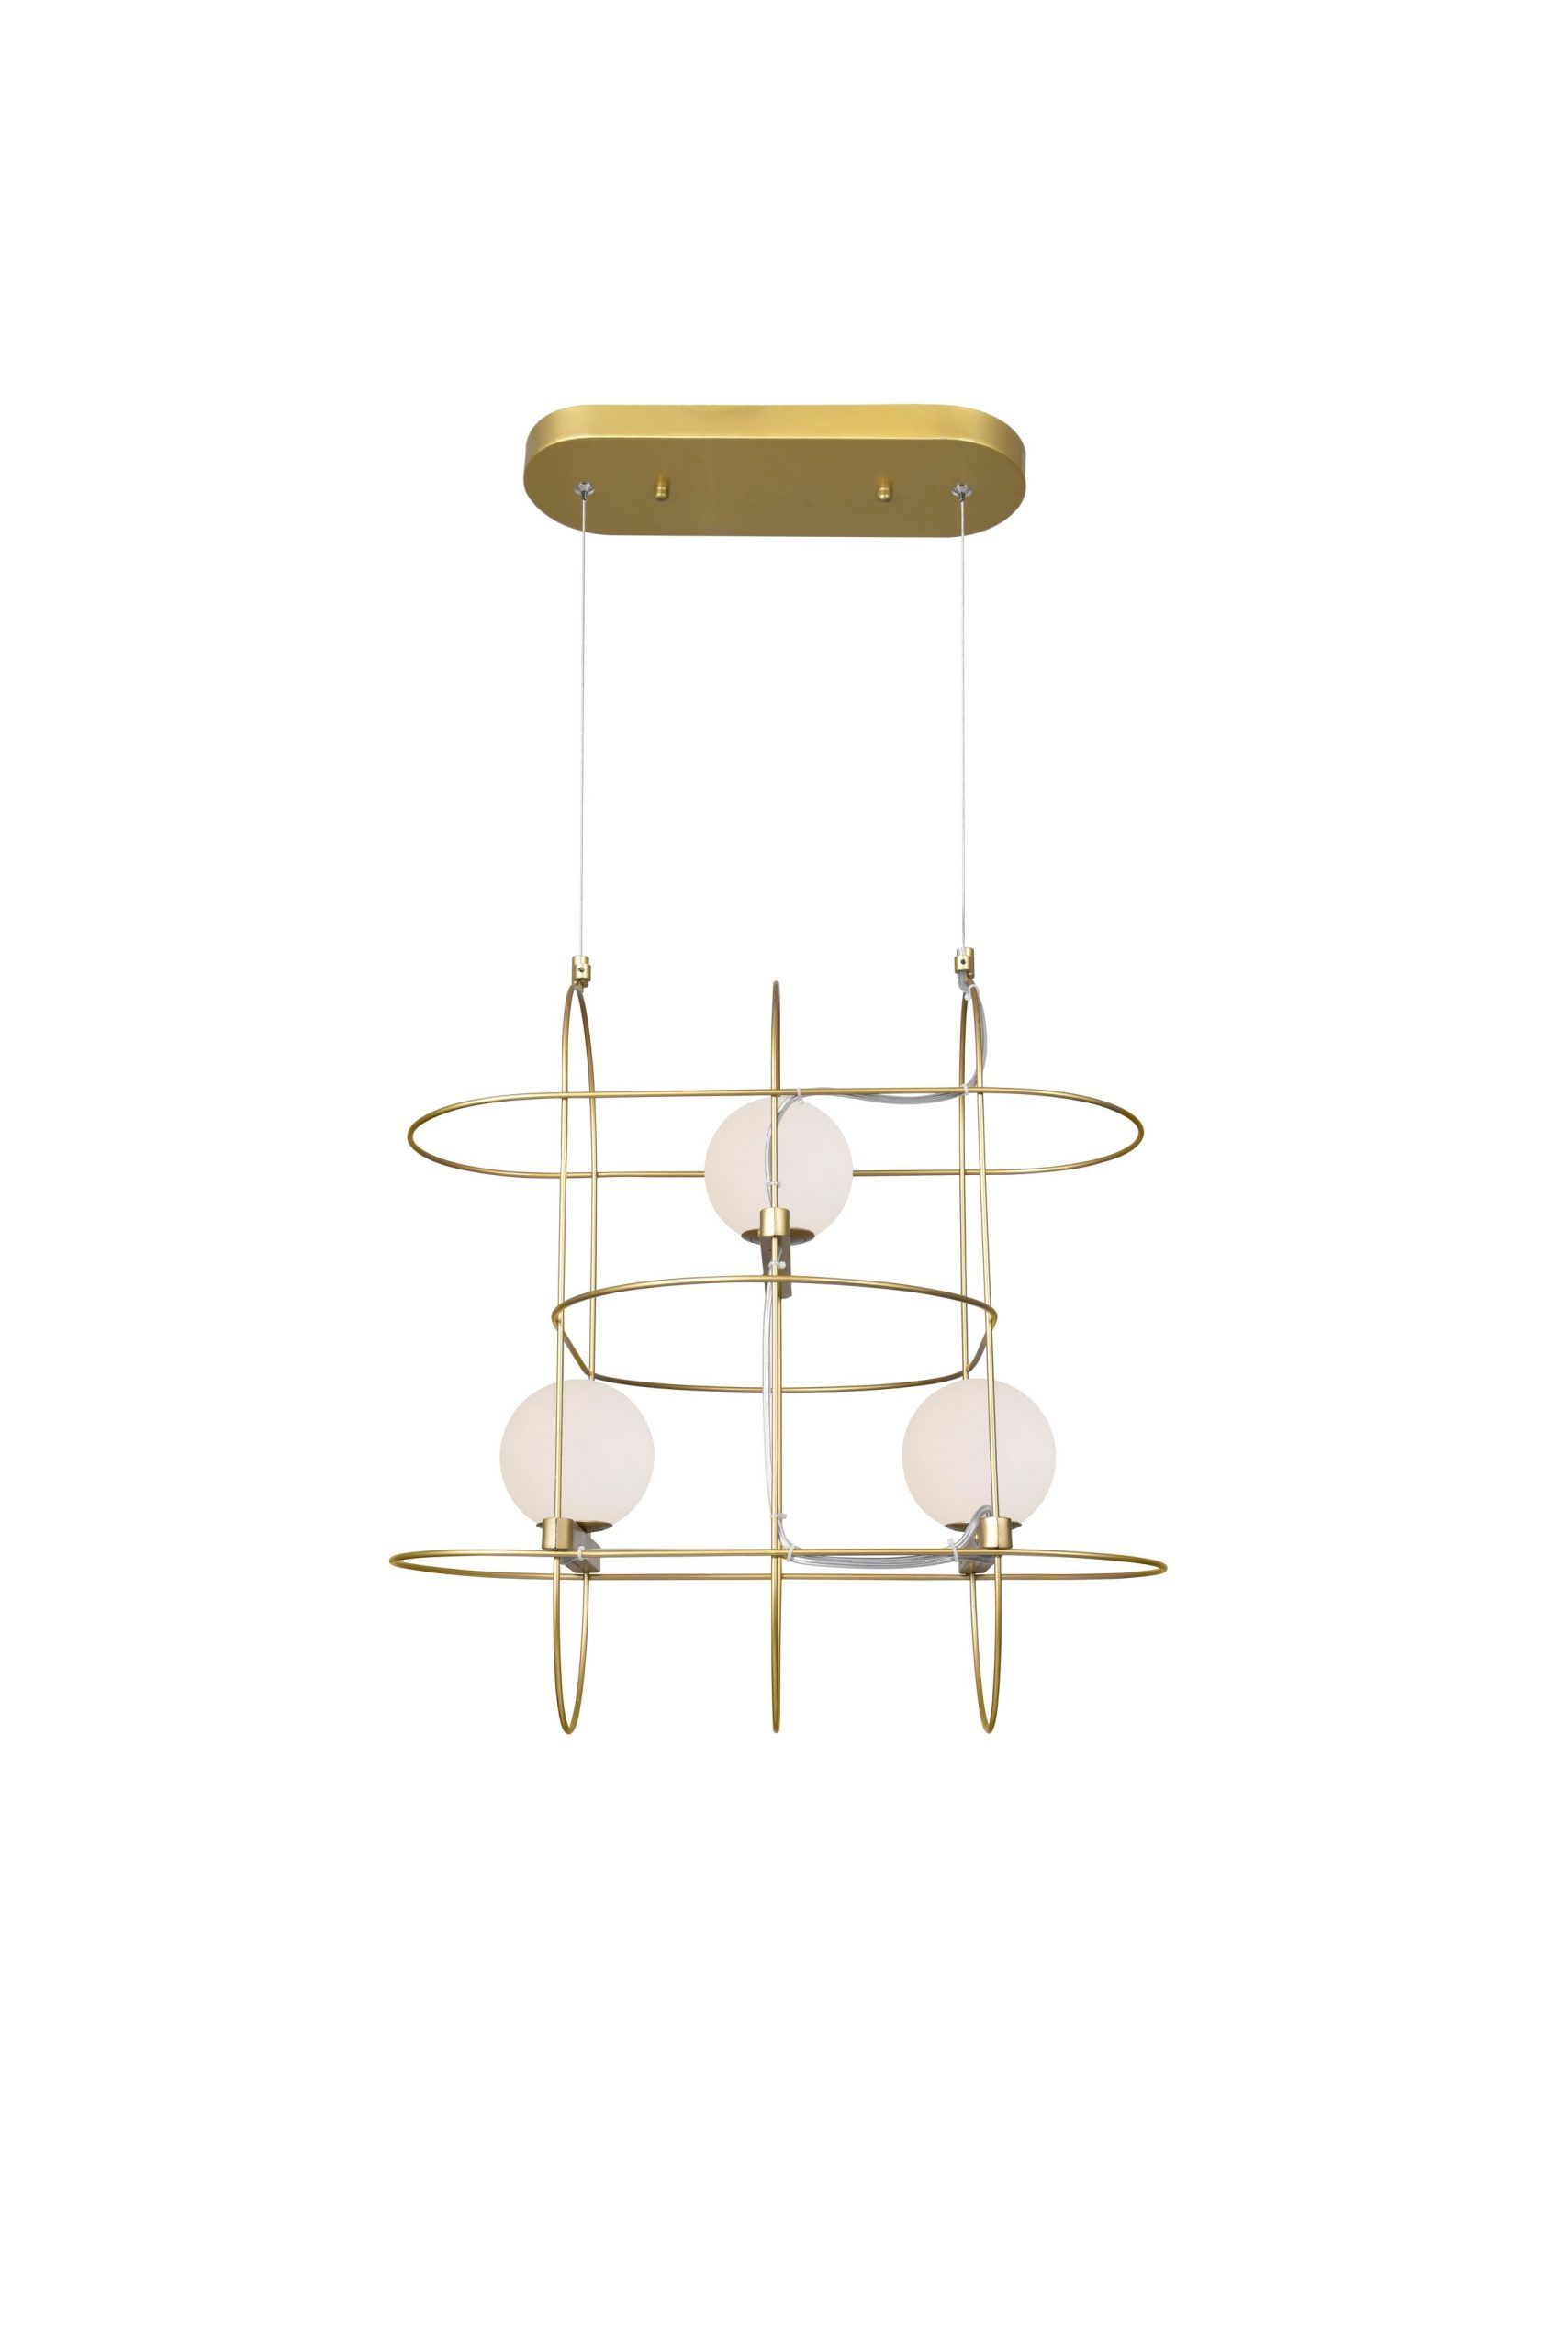 3 Light Chandelier with Medallion Gold Finish